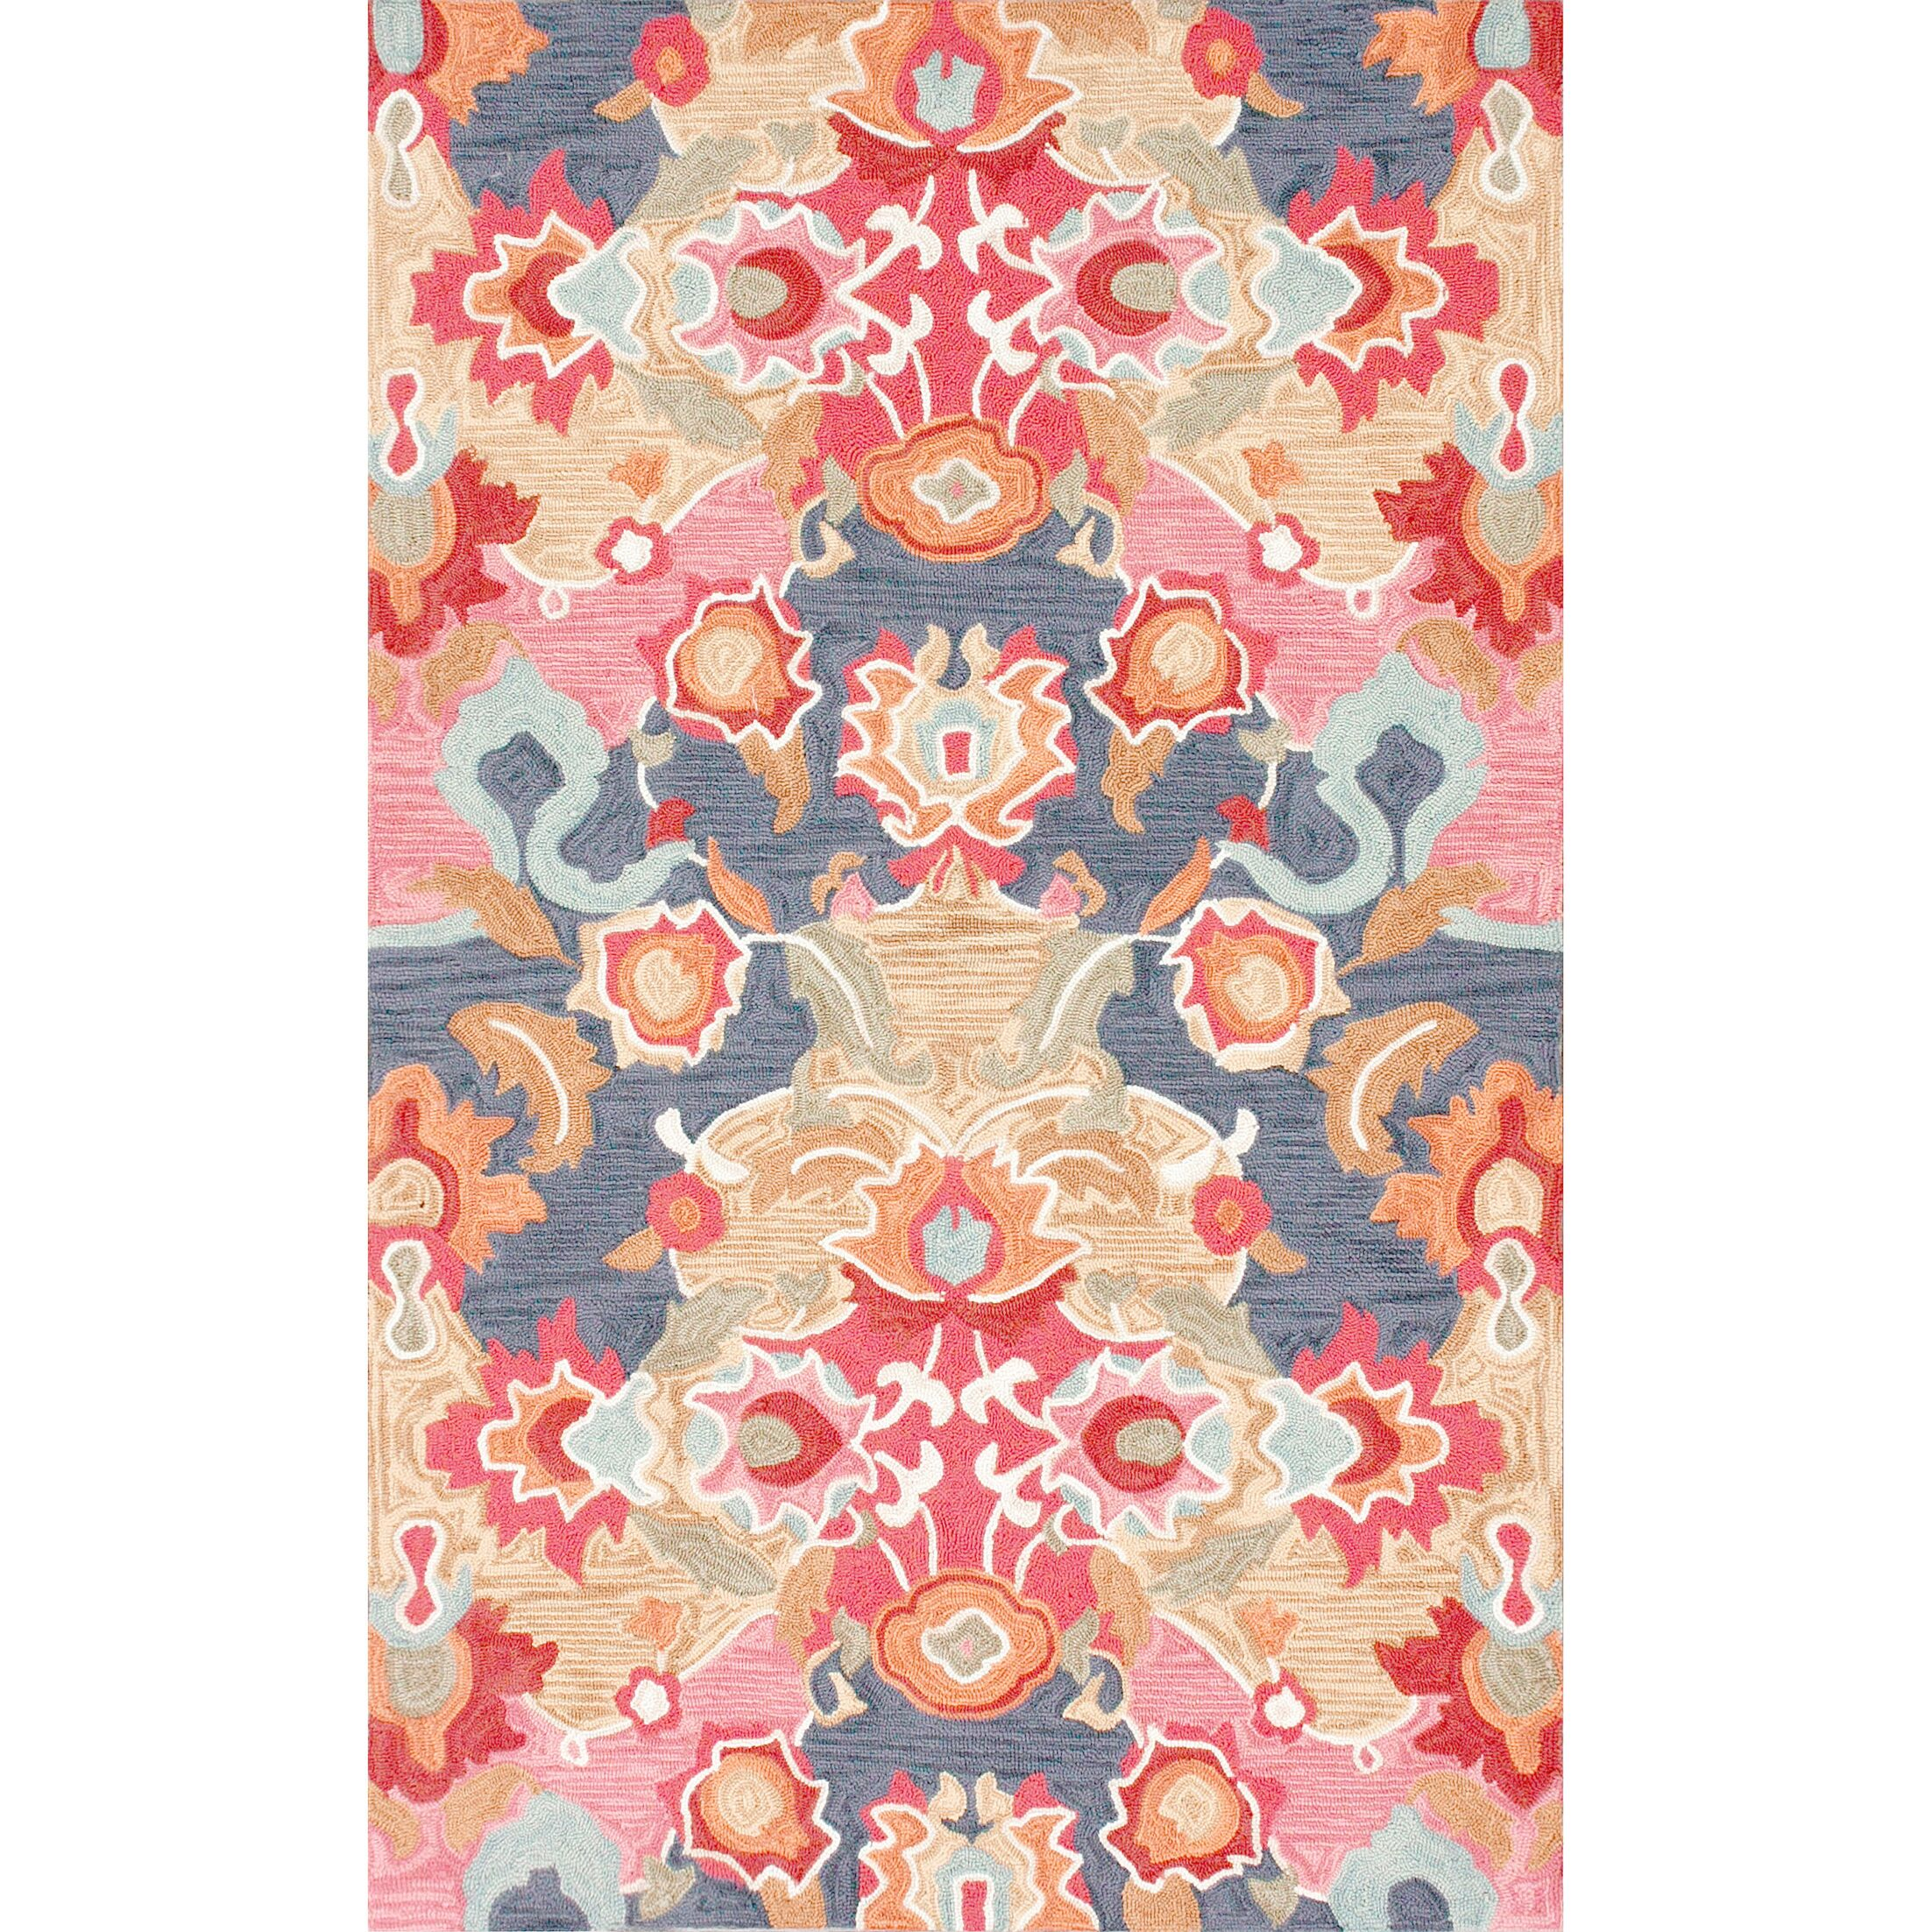 Maastricht Blue/Red Area Rug Rug Size: Rectangle 5' x 8'